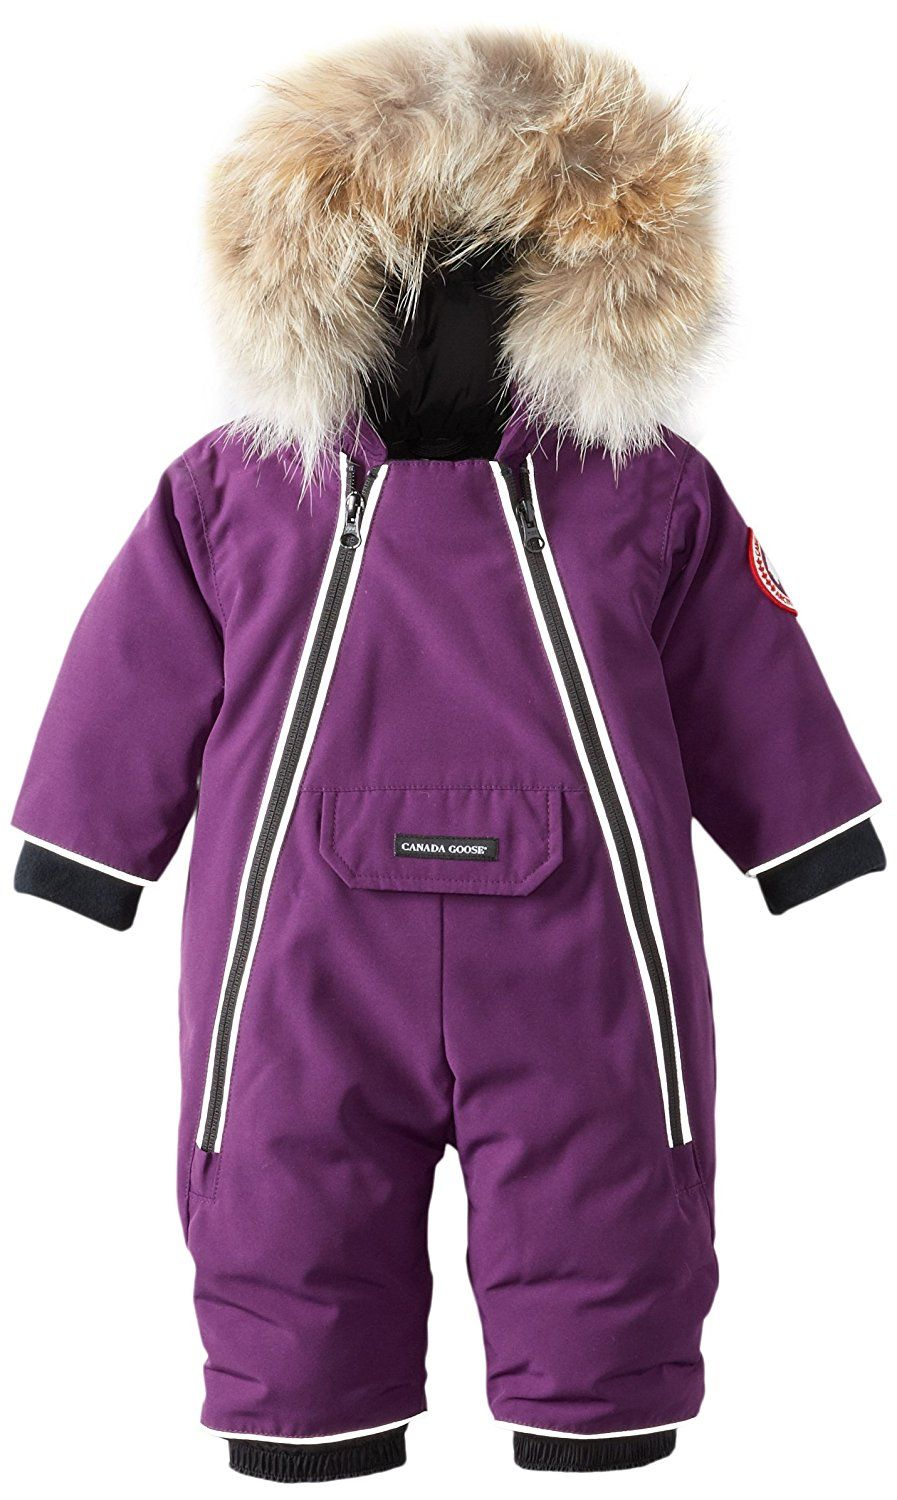 e8417b688b1a Canada Goose Jacket For Toddler